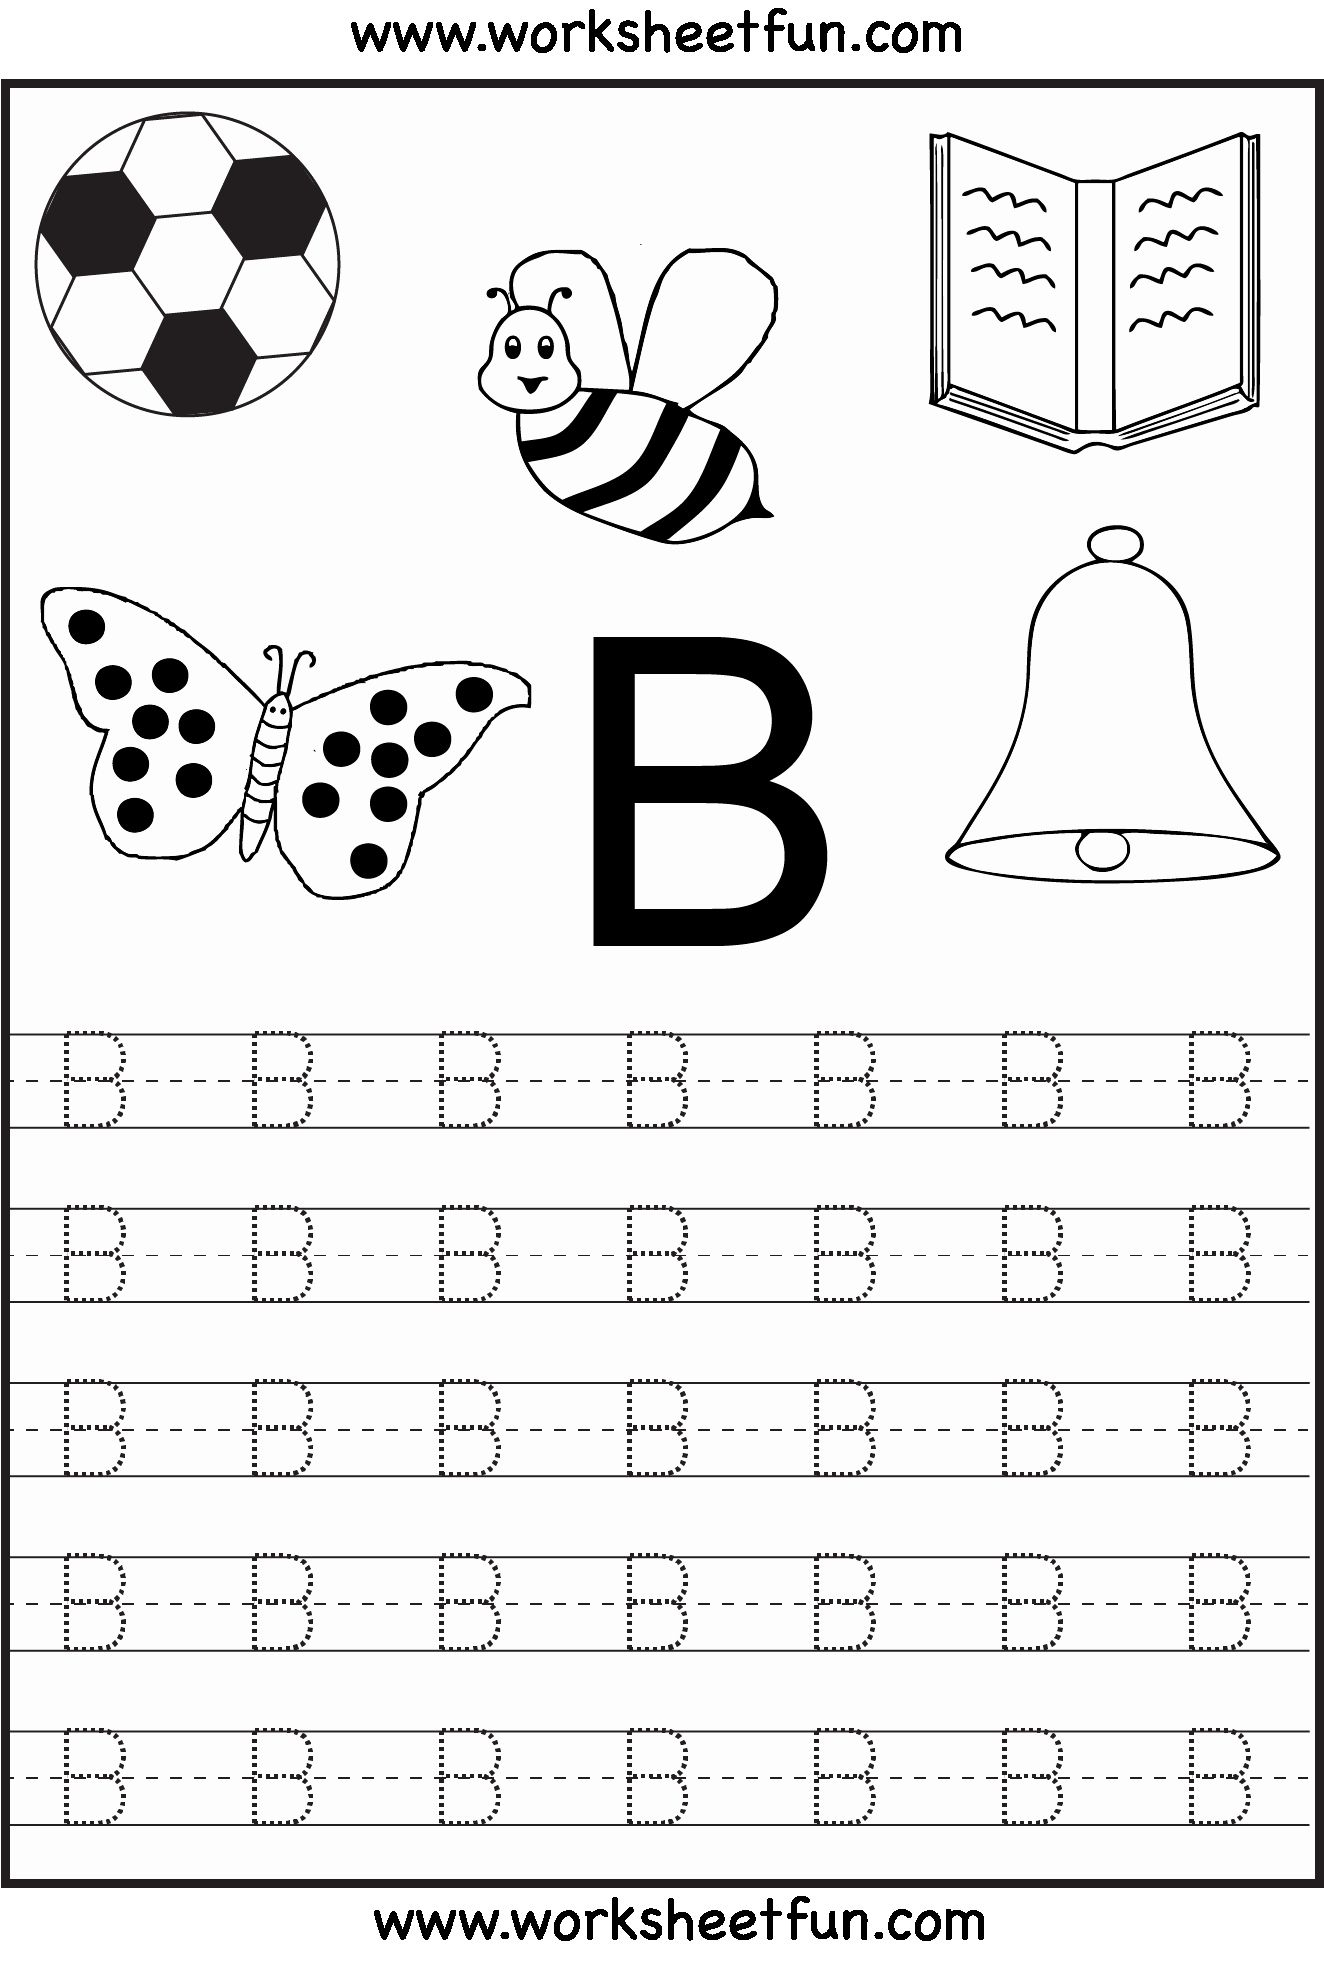 Alphabet Coloring Worksheets A-Z Pdf In 2020 (With Images pertaining to Alphabet Tracing Coloring Worksheets